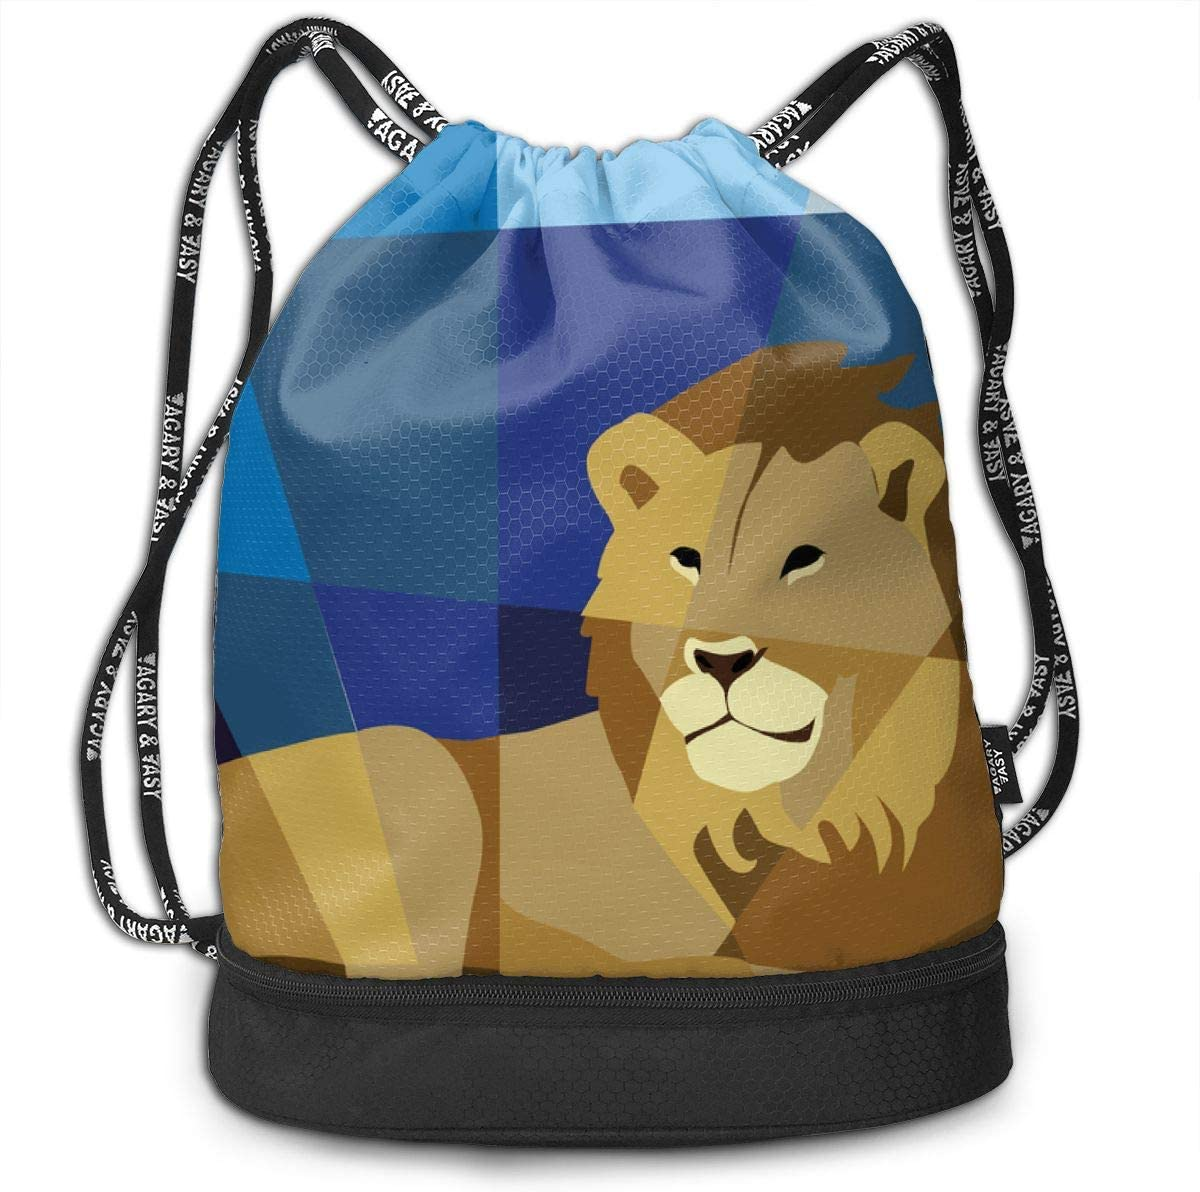 Lion Quilt Drawstring Backpack Sports Athletic Gym Cinch Sack String Storage Bags for Hiking Travel Beach